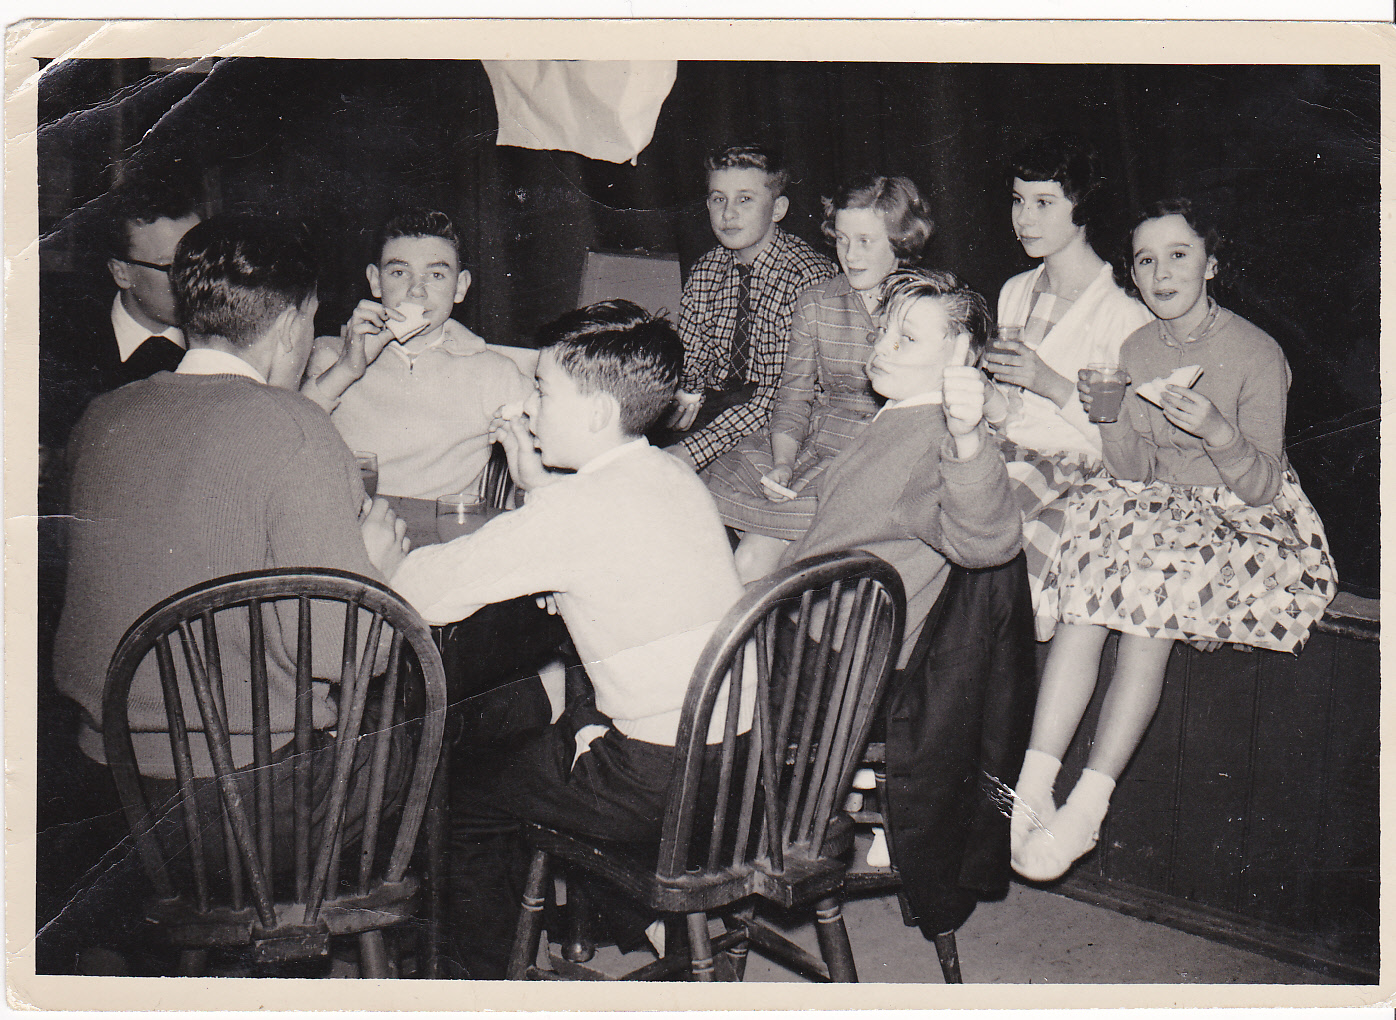 Borden Youth Club 1959